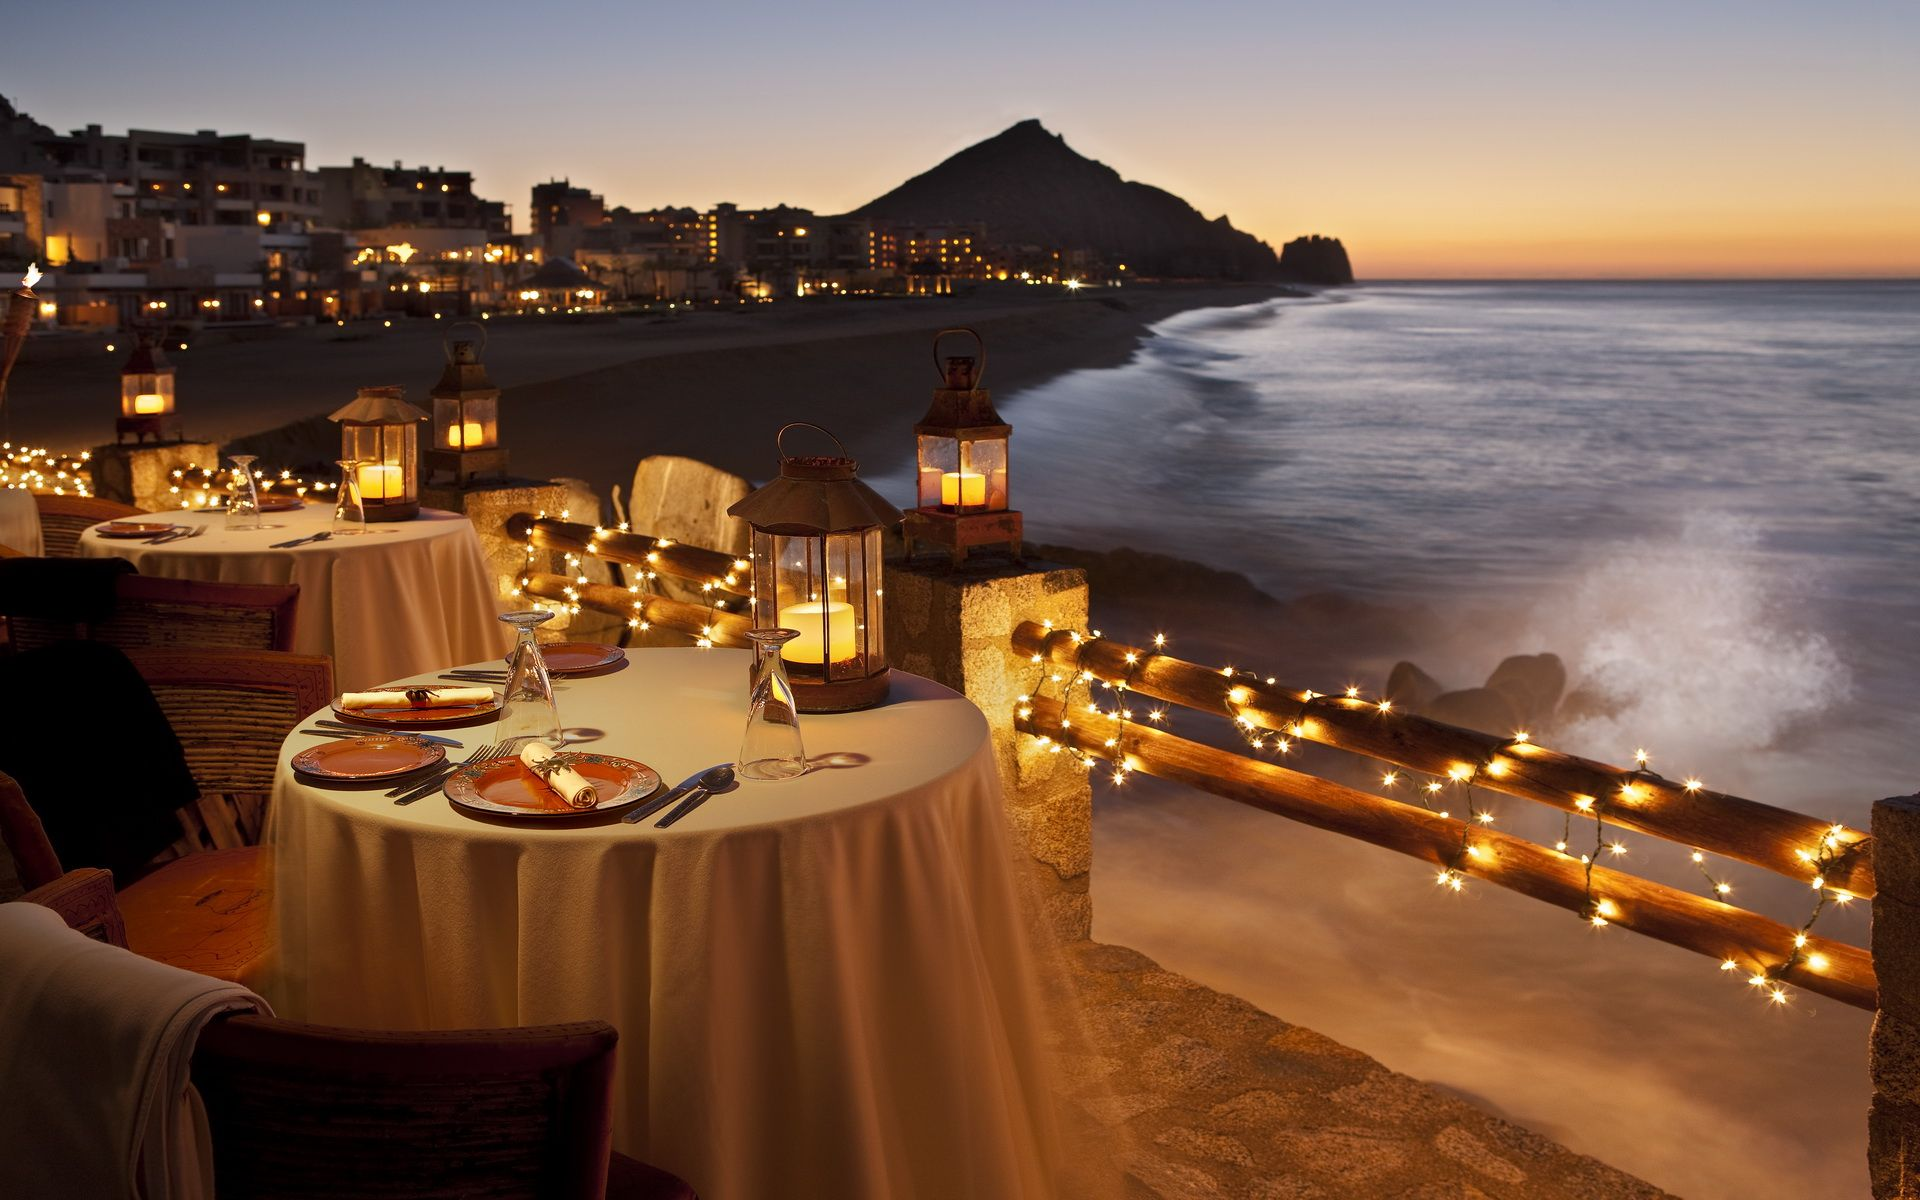 awesome Restaurant hd